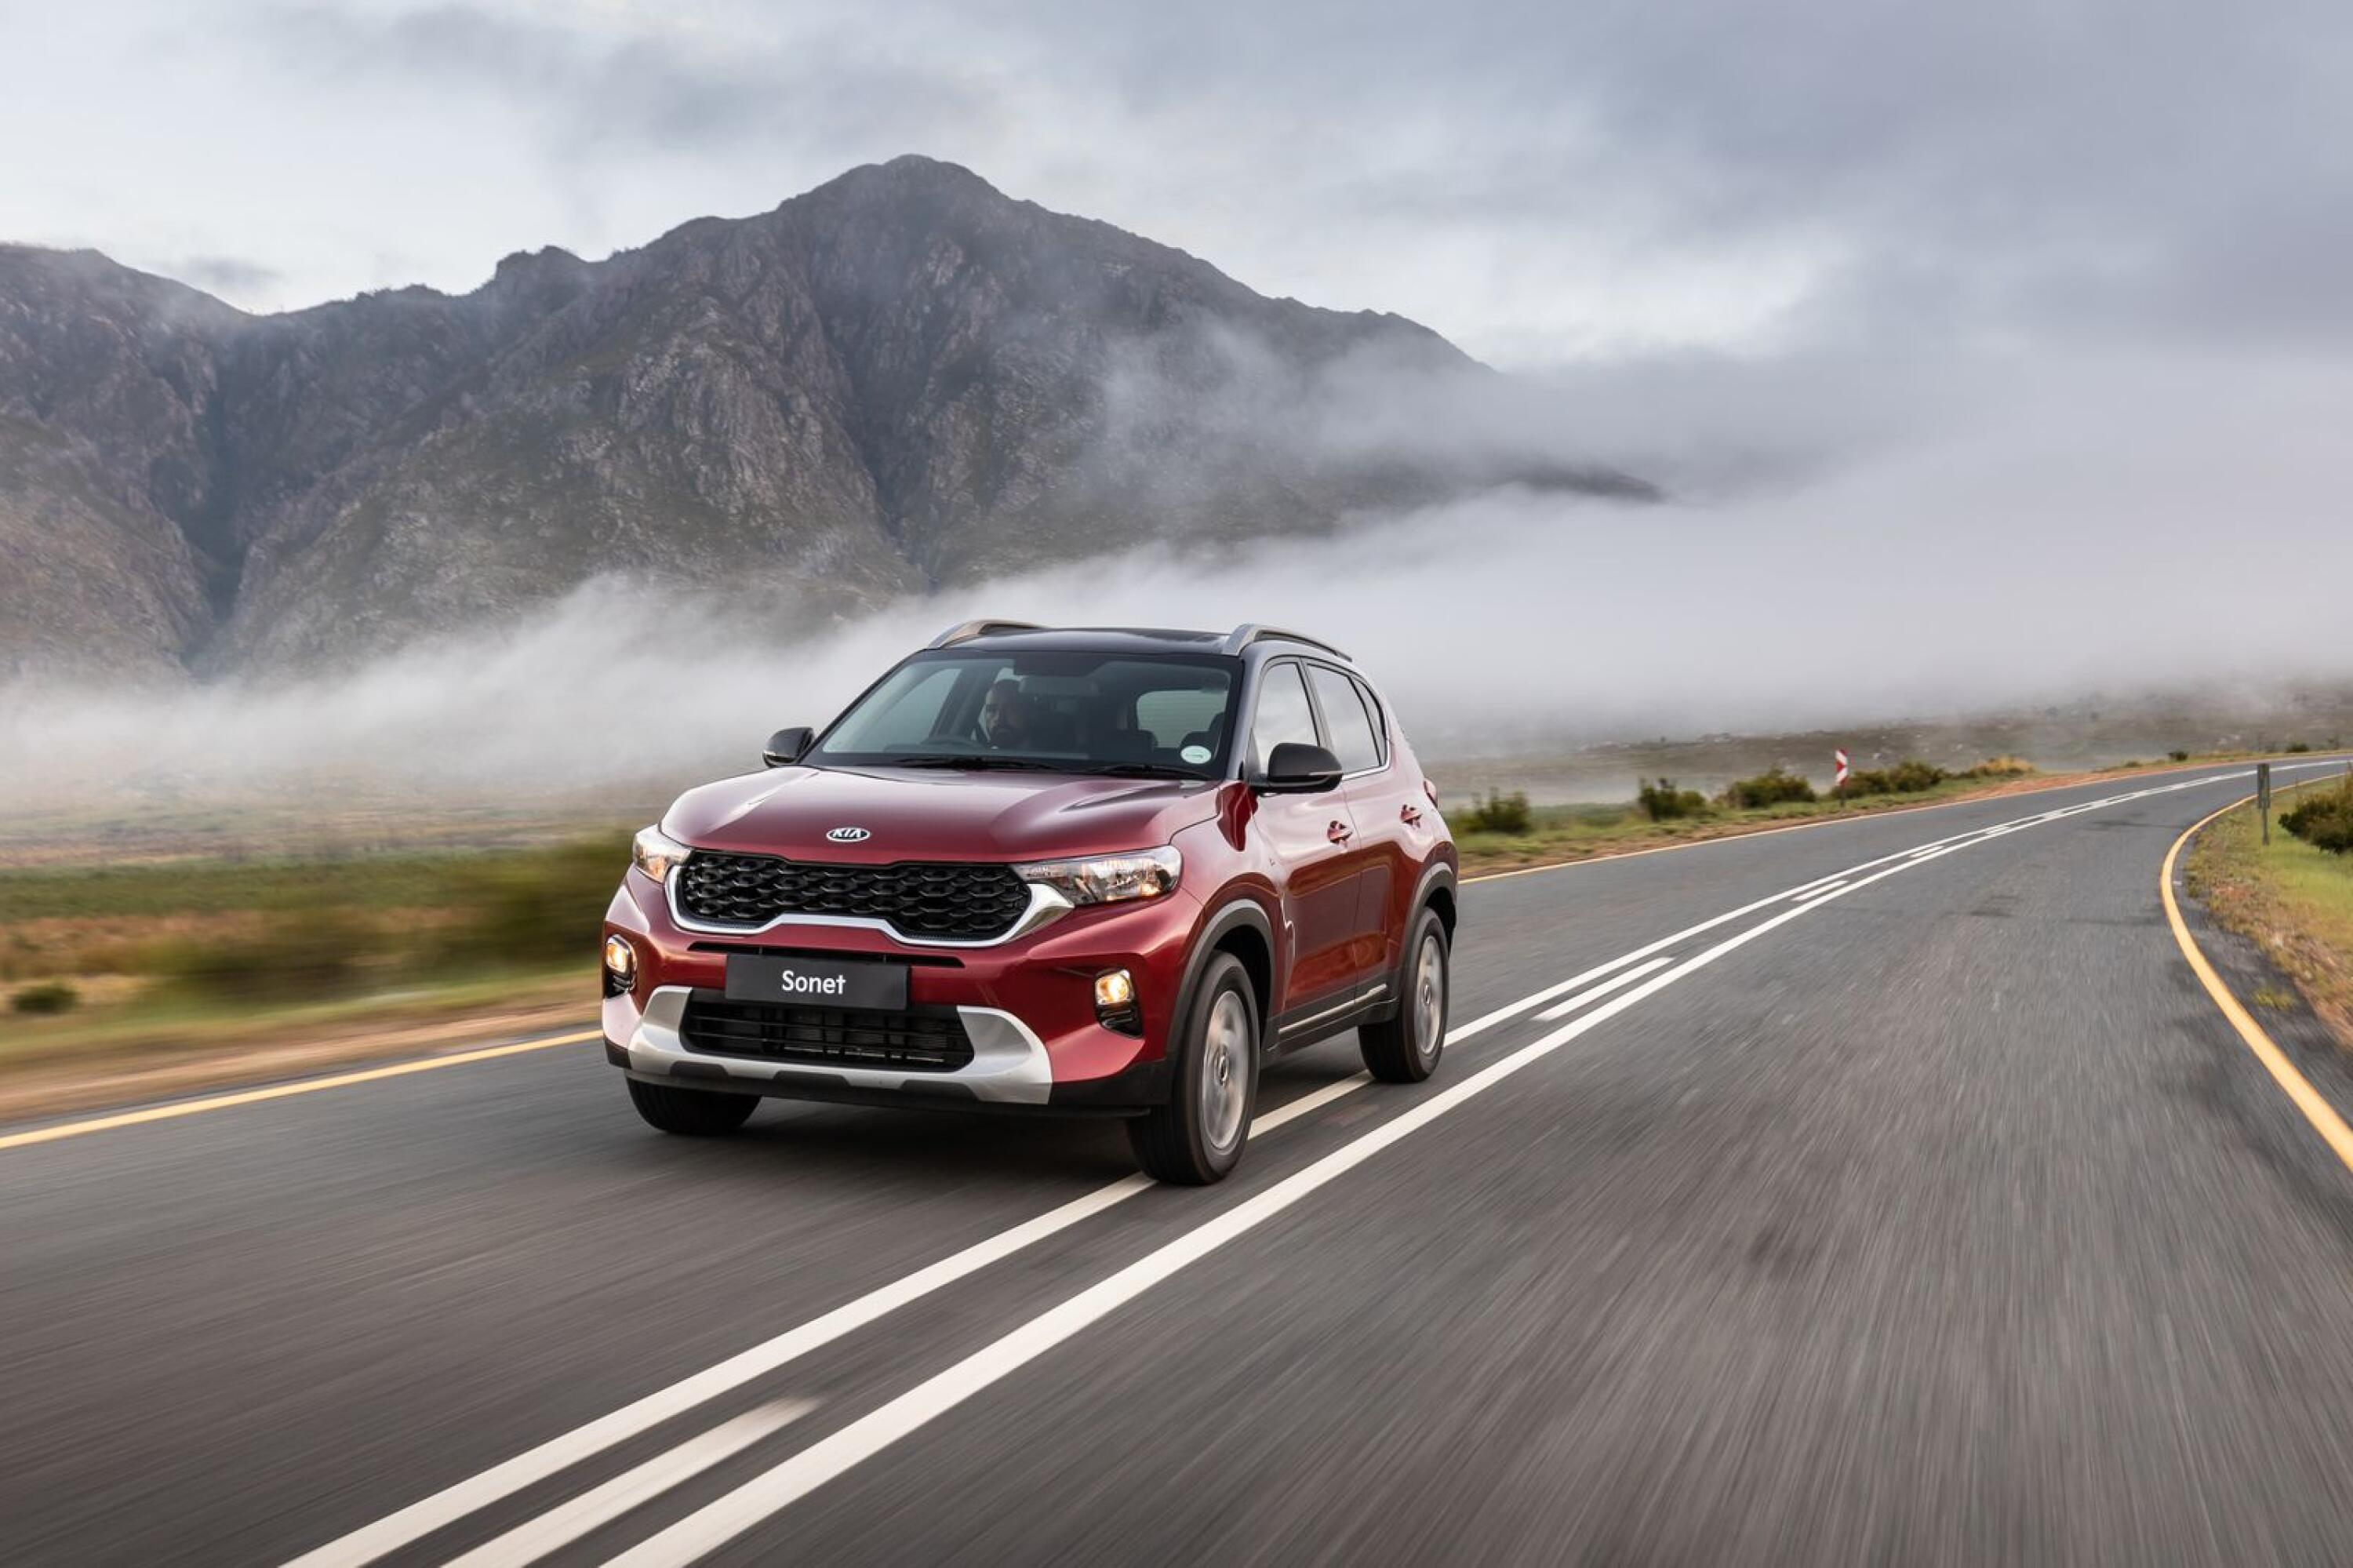 2021 KIA Sonet has just gone on sale in South Africa